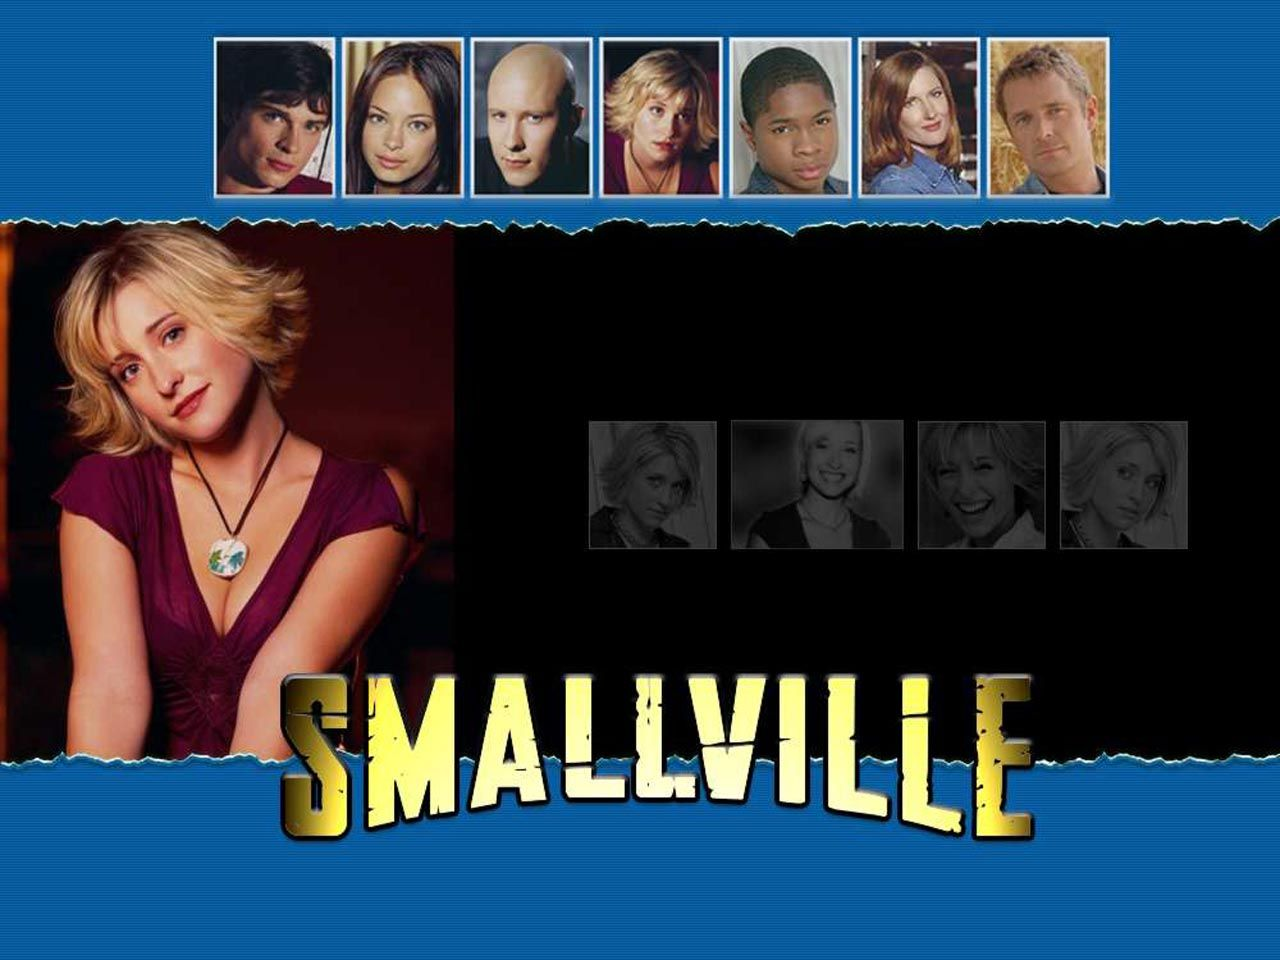 Chloe Sullivan With Smallville Characters Wallpaper 1280x960